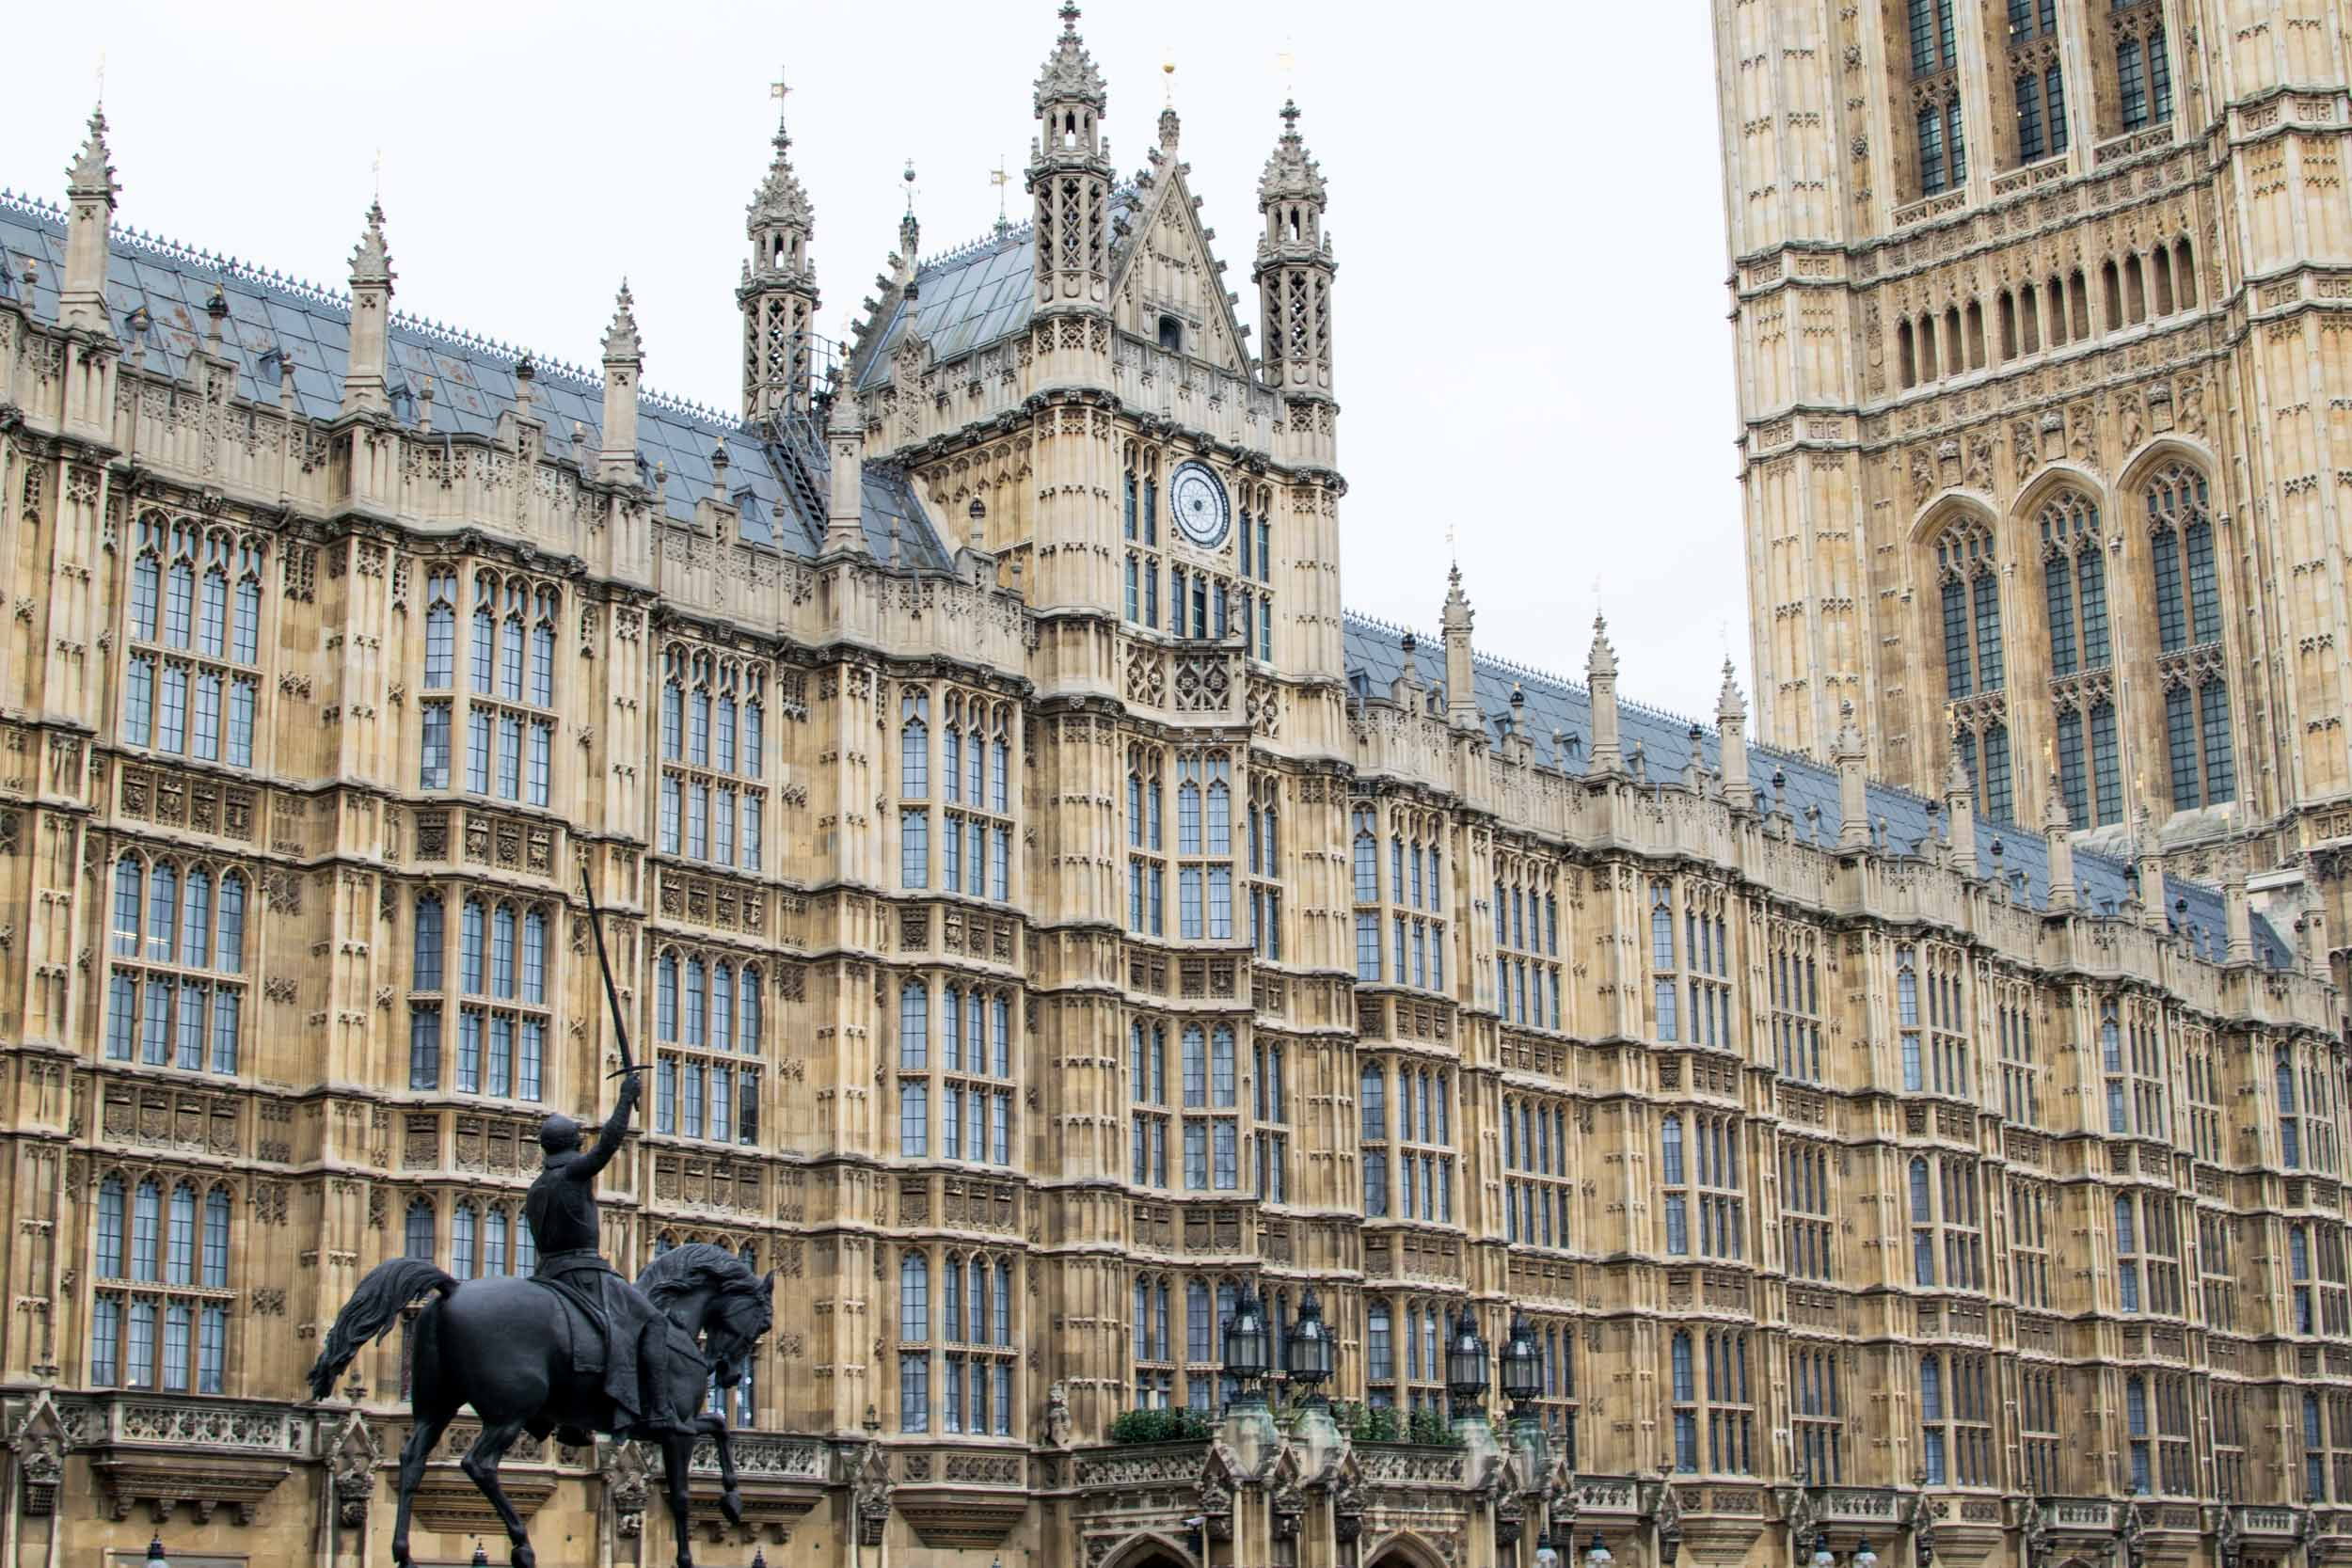 The House of Lords with horseman statue in London.